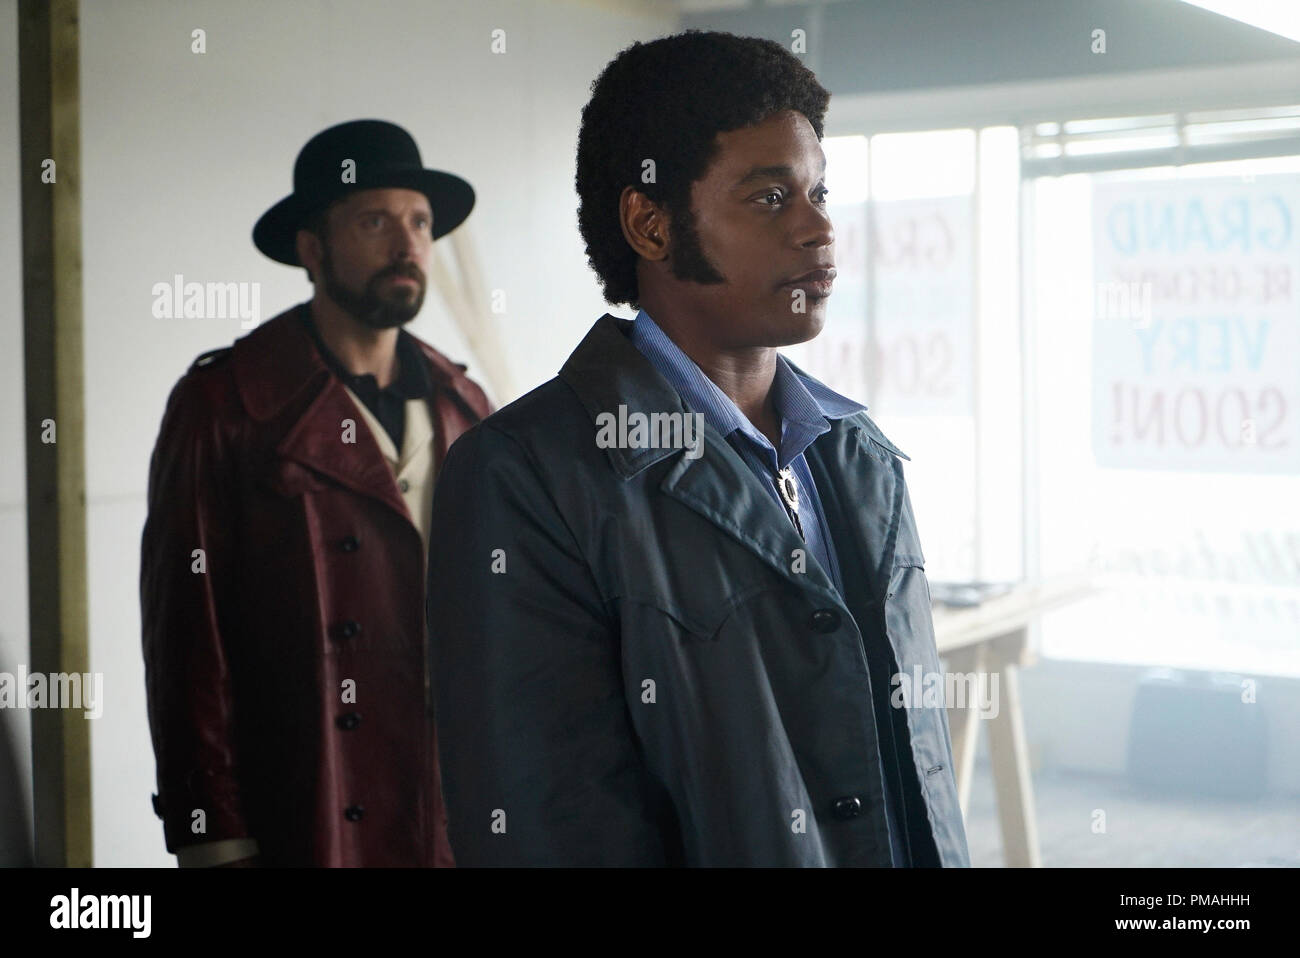 FARGO -- 'Before The Law' -- Episode 202 (Airs October 19, 10:00 pm e/p) Pictured: (l-r) Brad Mann as Gale Kitchen, Bokeem Woodbine as Mike Milligan. - Stock Image